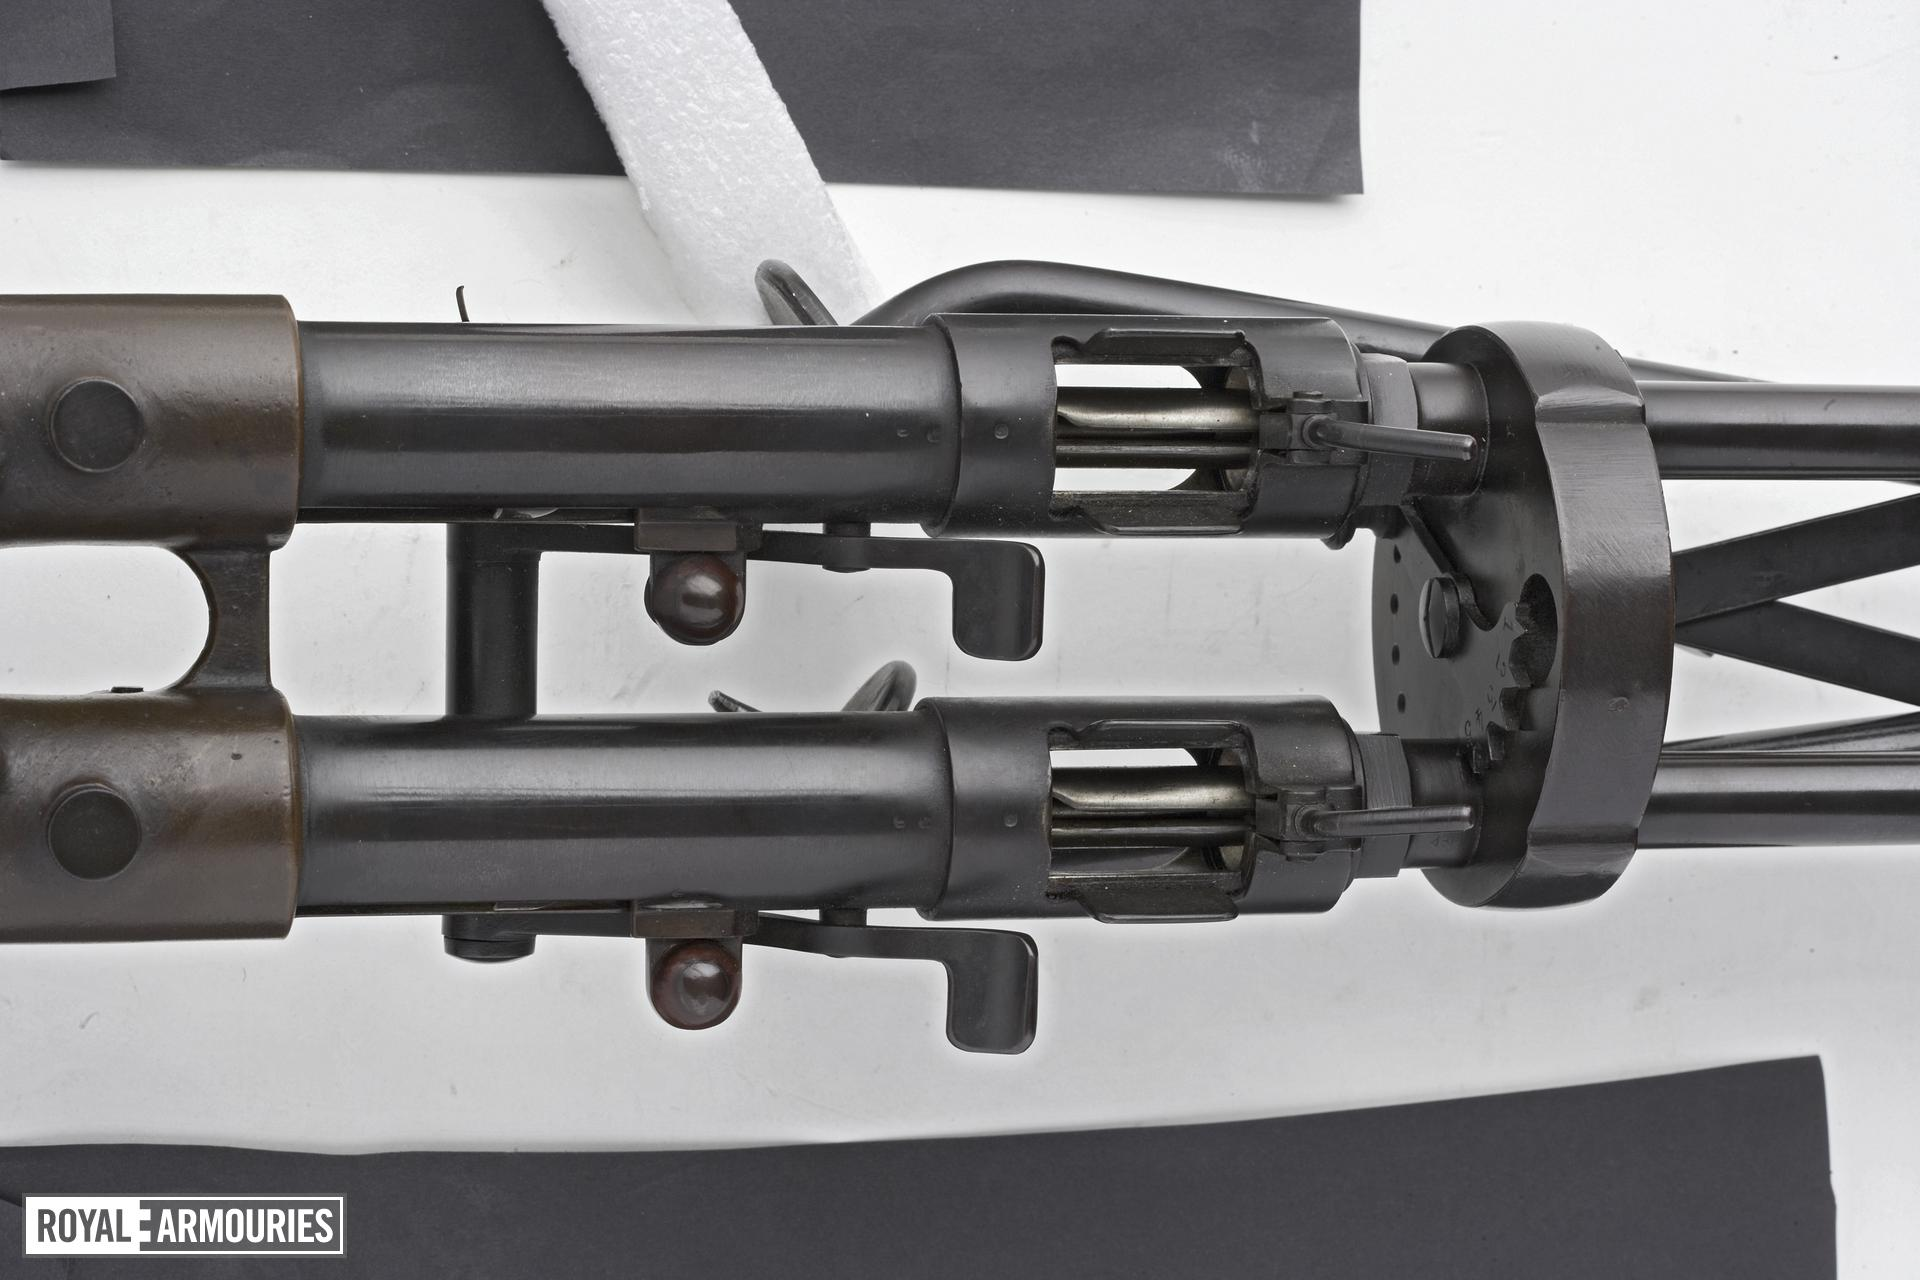 Twin Villar Perosa delayed blowback operated double barrelled submachine gun, various manufacturers in Italy and Canada